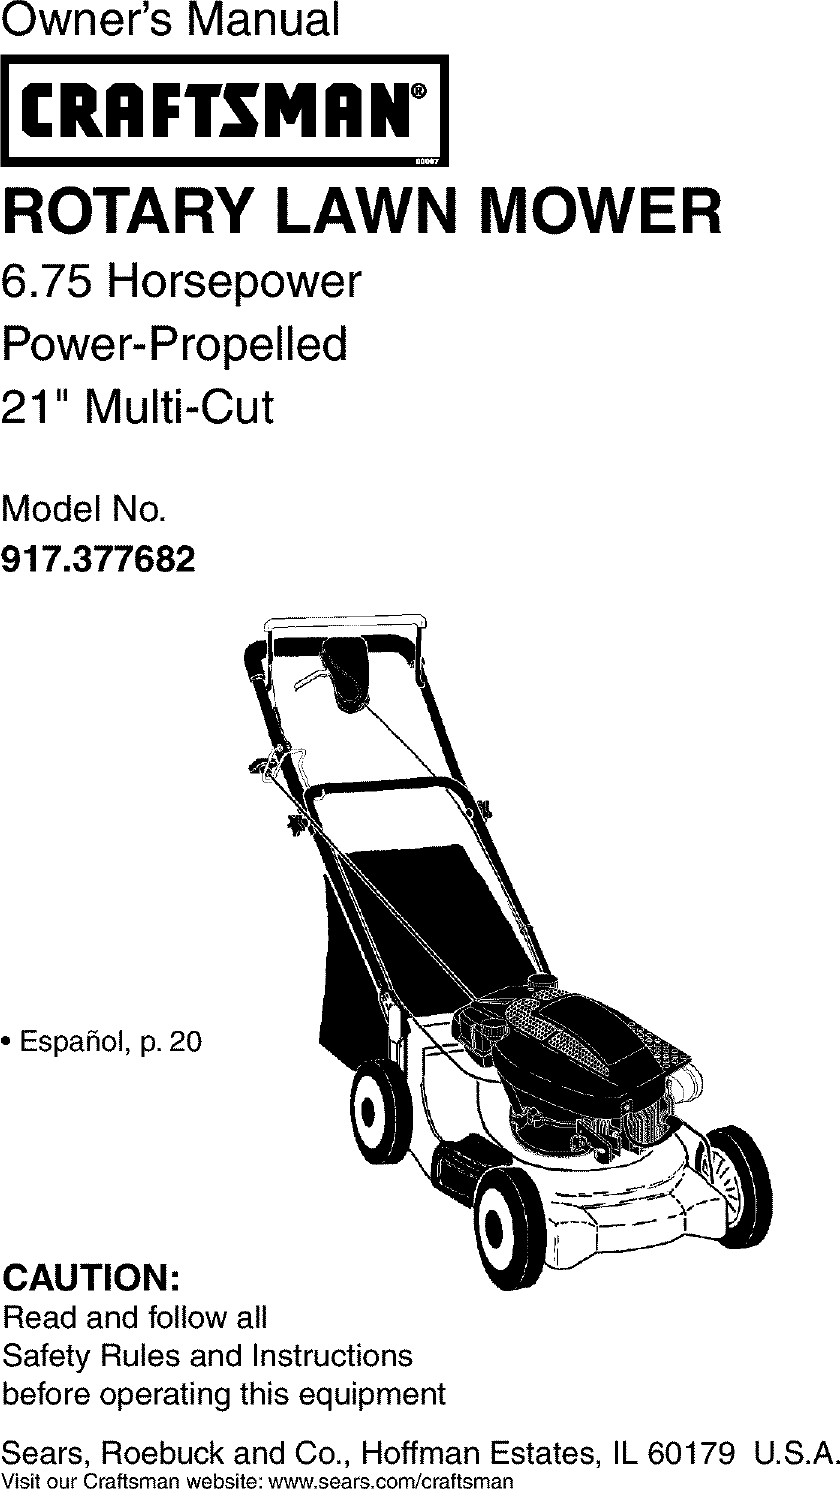 Craftsman 917377682 User Manual Gas, Walk Behind Lawnmower